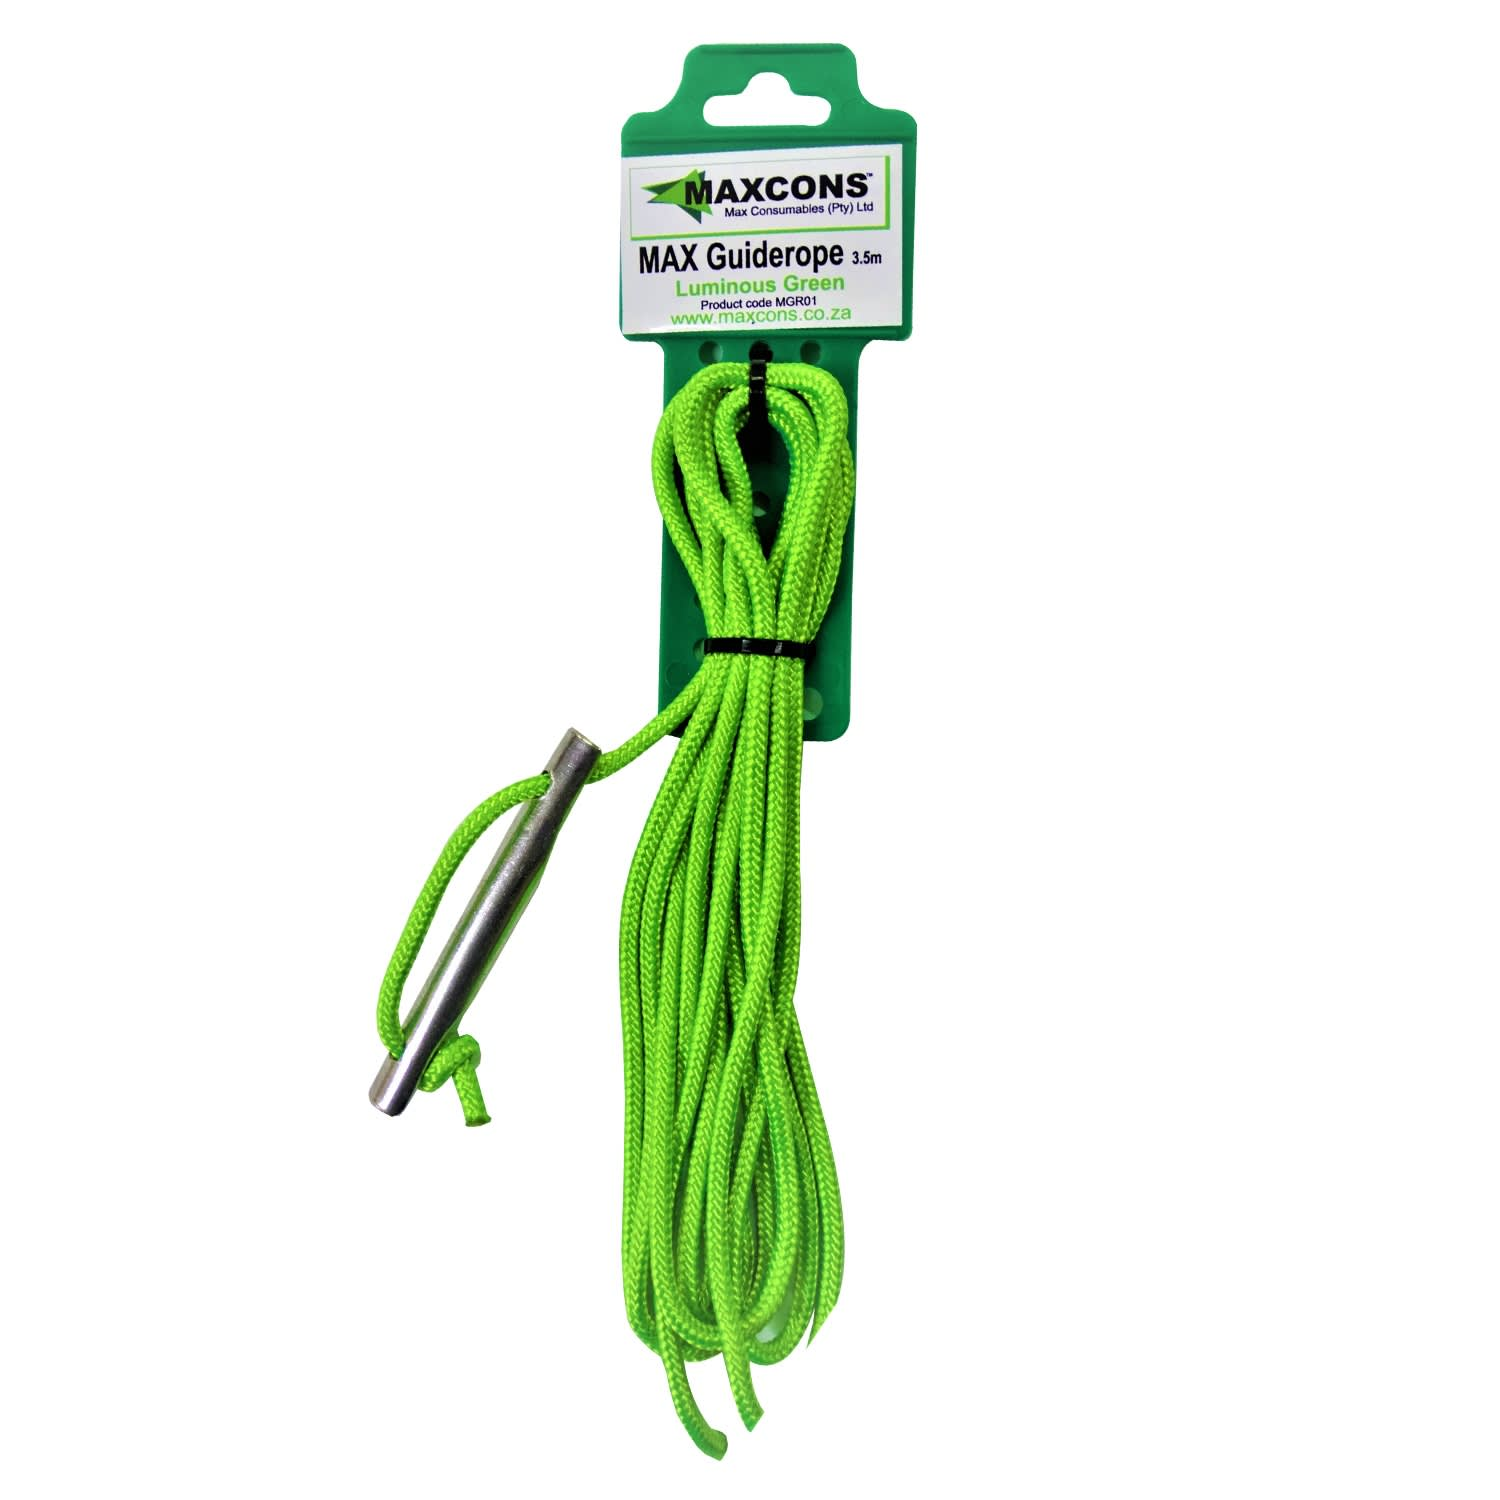 Maxcon Guy Rope 3.5m Luminous Green